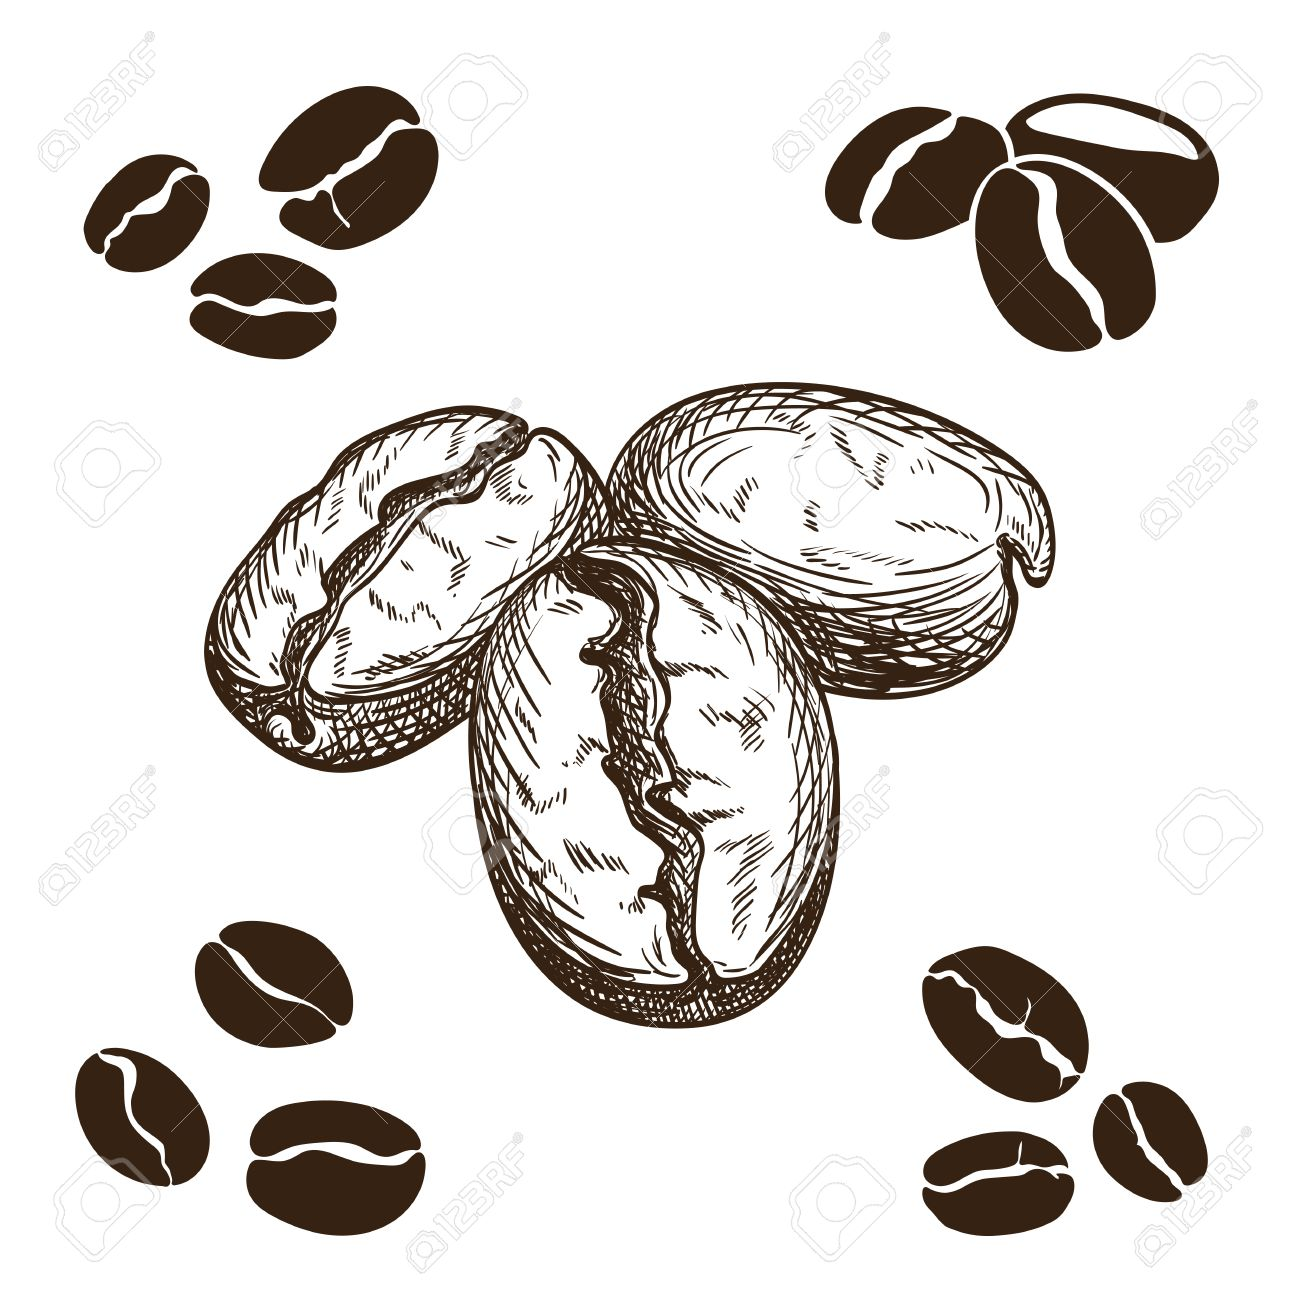 Silhouette and hand drawn coffee beans. - 35124694